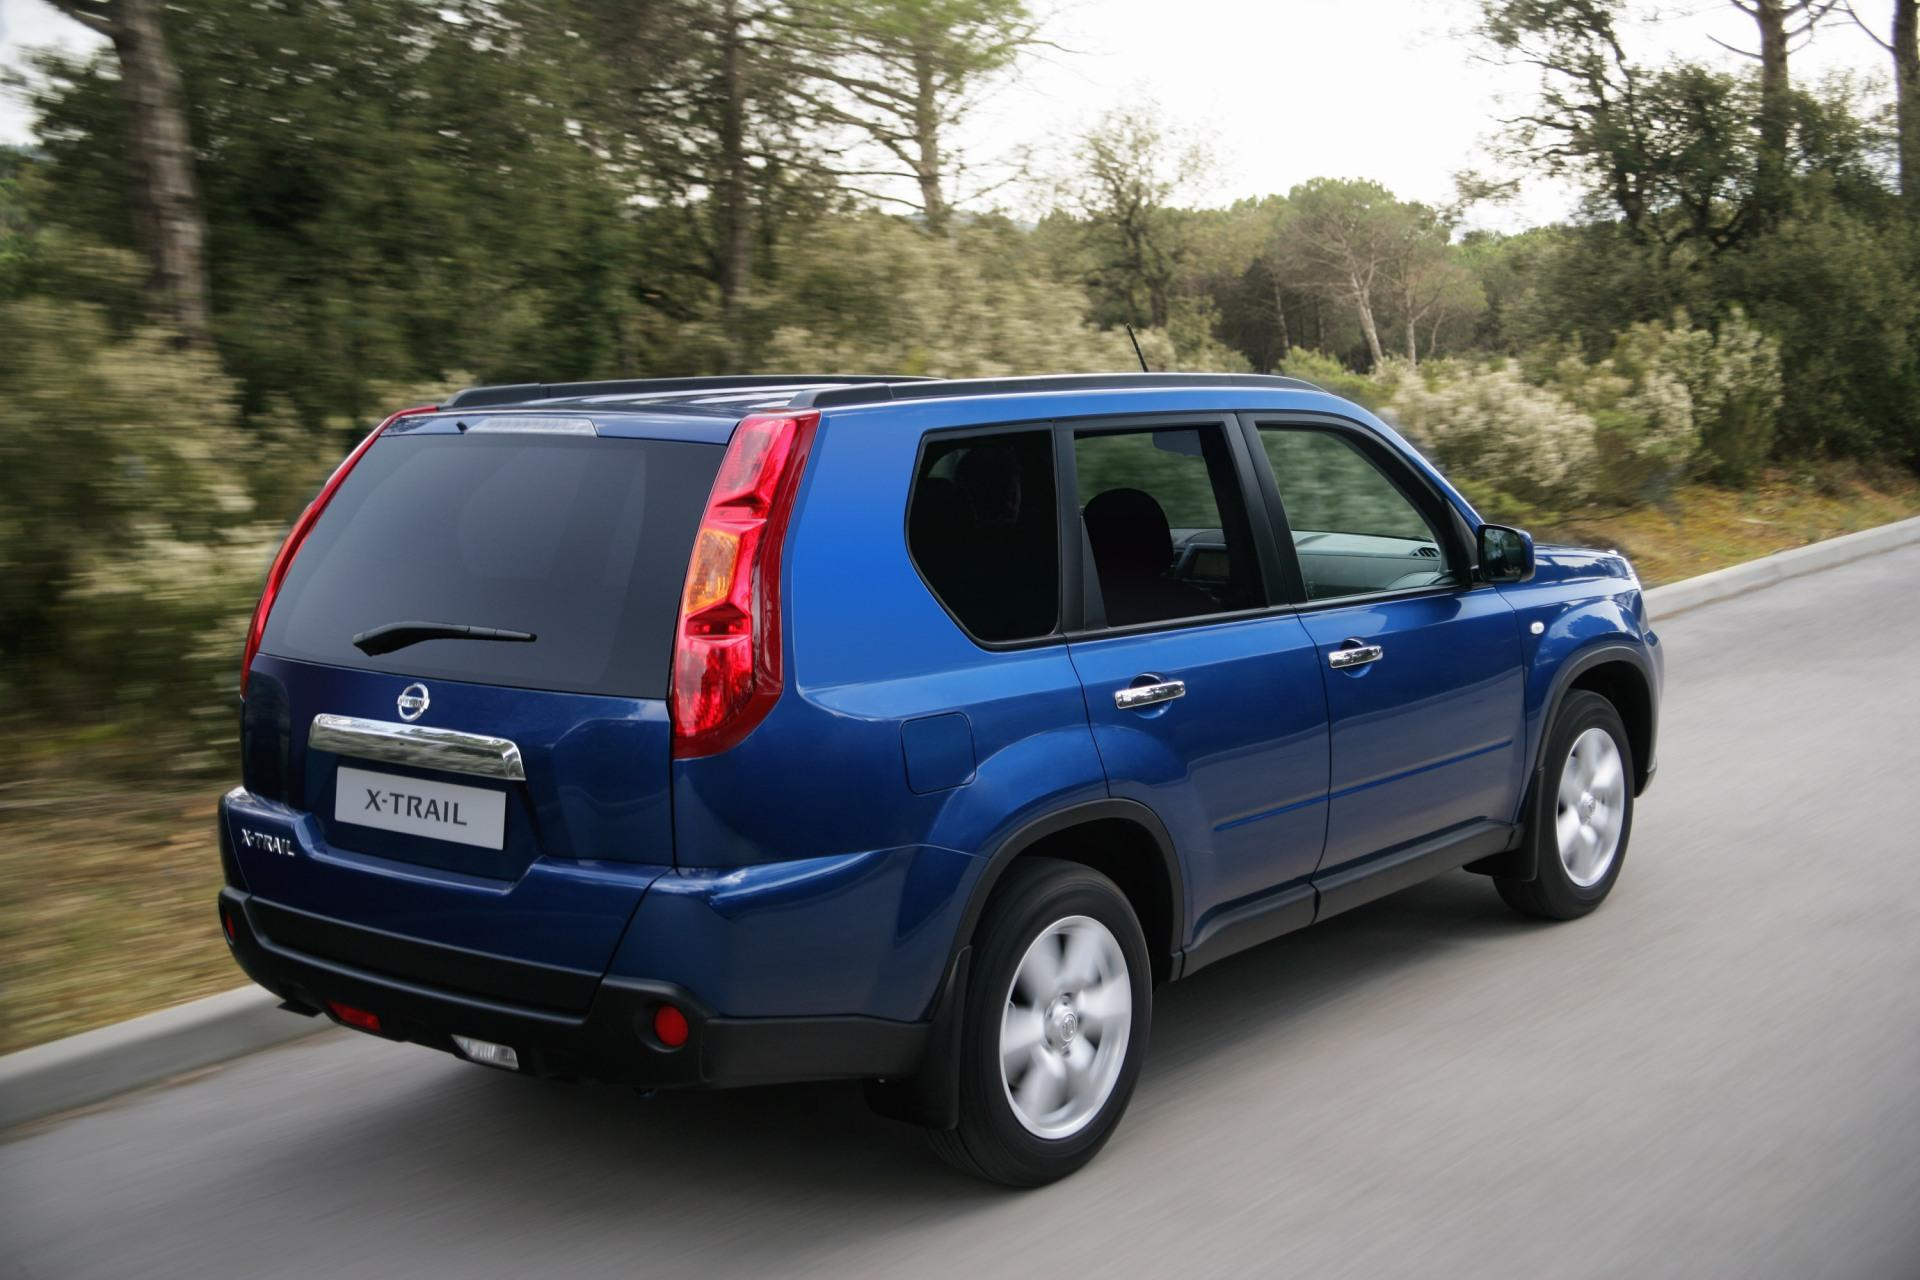 2009 nissan x trail images photo nissan x trail 2009. Black Bedroom Furniture Sets. Home Design Ideas